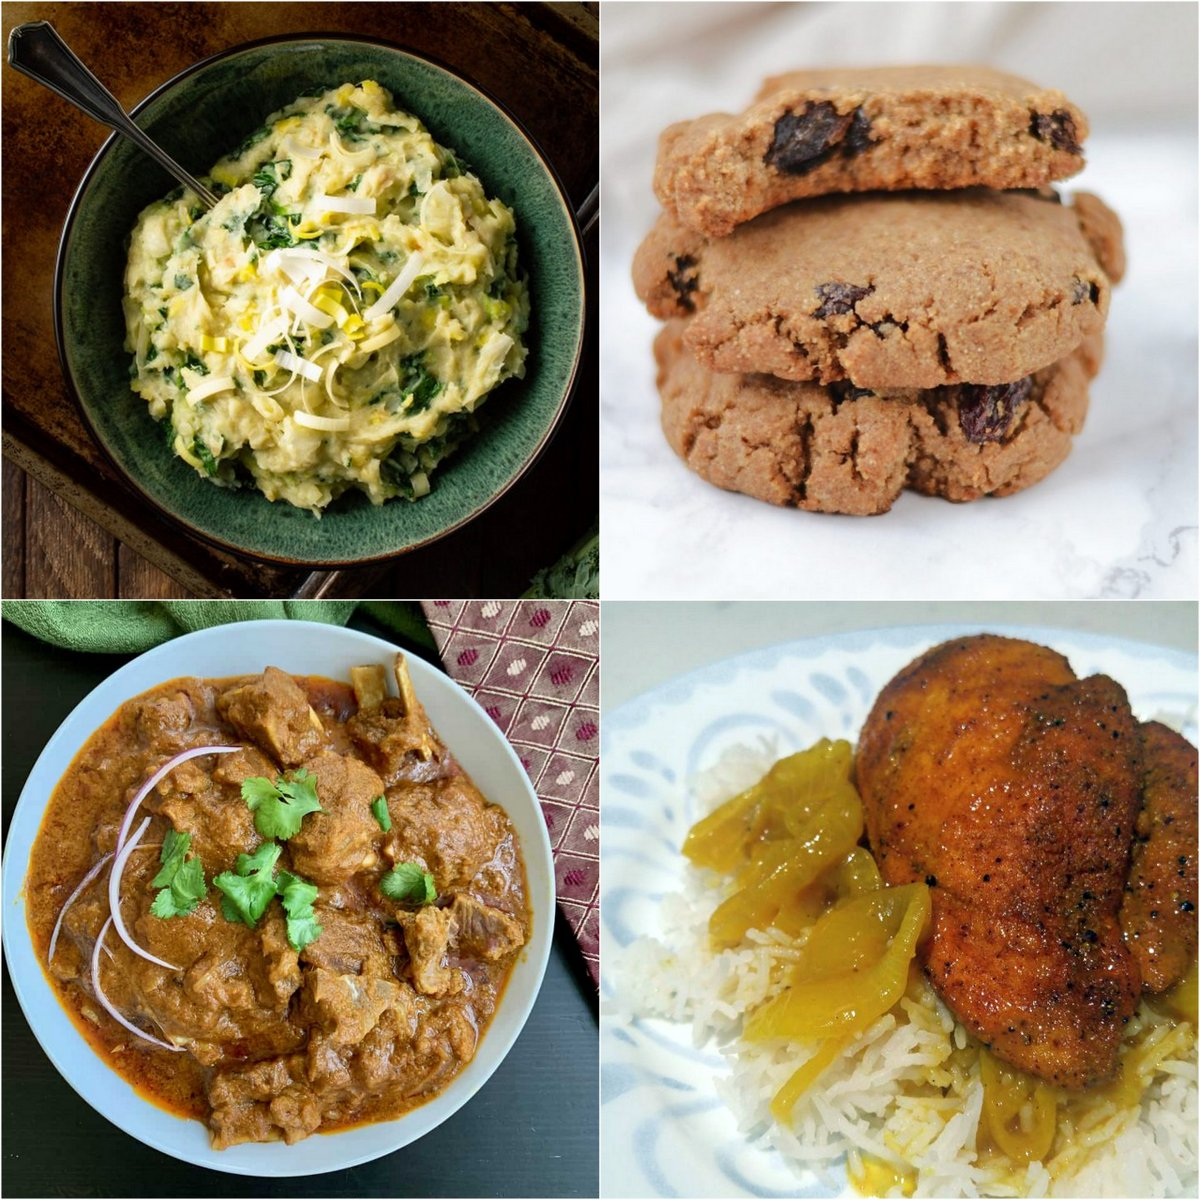 Paleo AIP Recipe Roundtable #361 | Phoenix Helix - *Featured Recipes: Irish Colcannon, Cinnamon Raisin Cookies, Instant Pot Goat (or Lamb) Curry, and Honey Curry Chicken Breasts